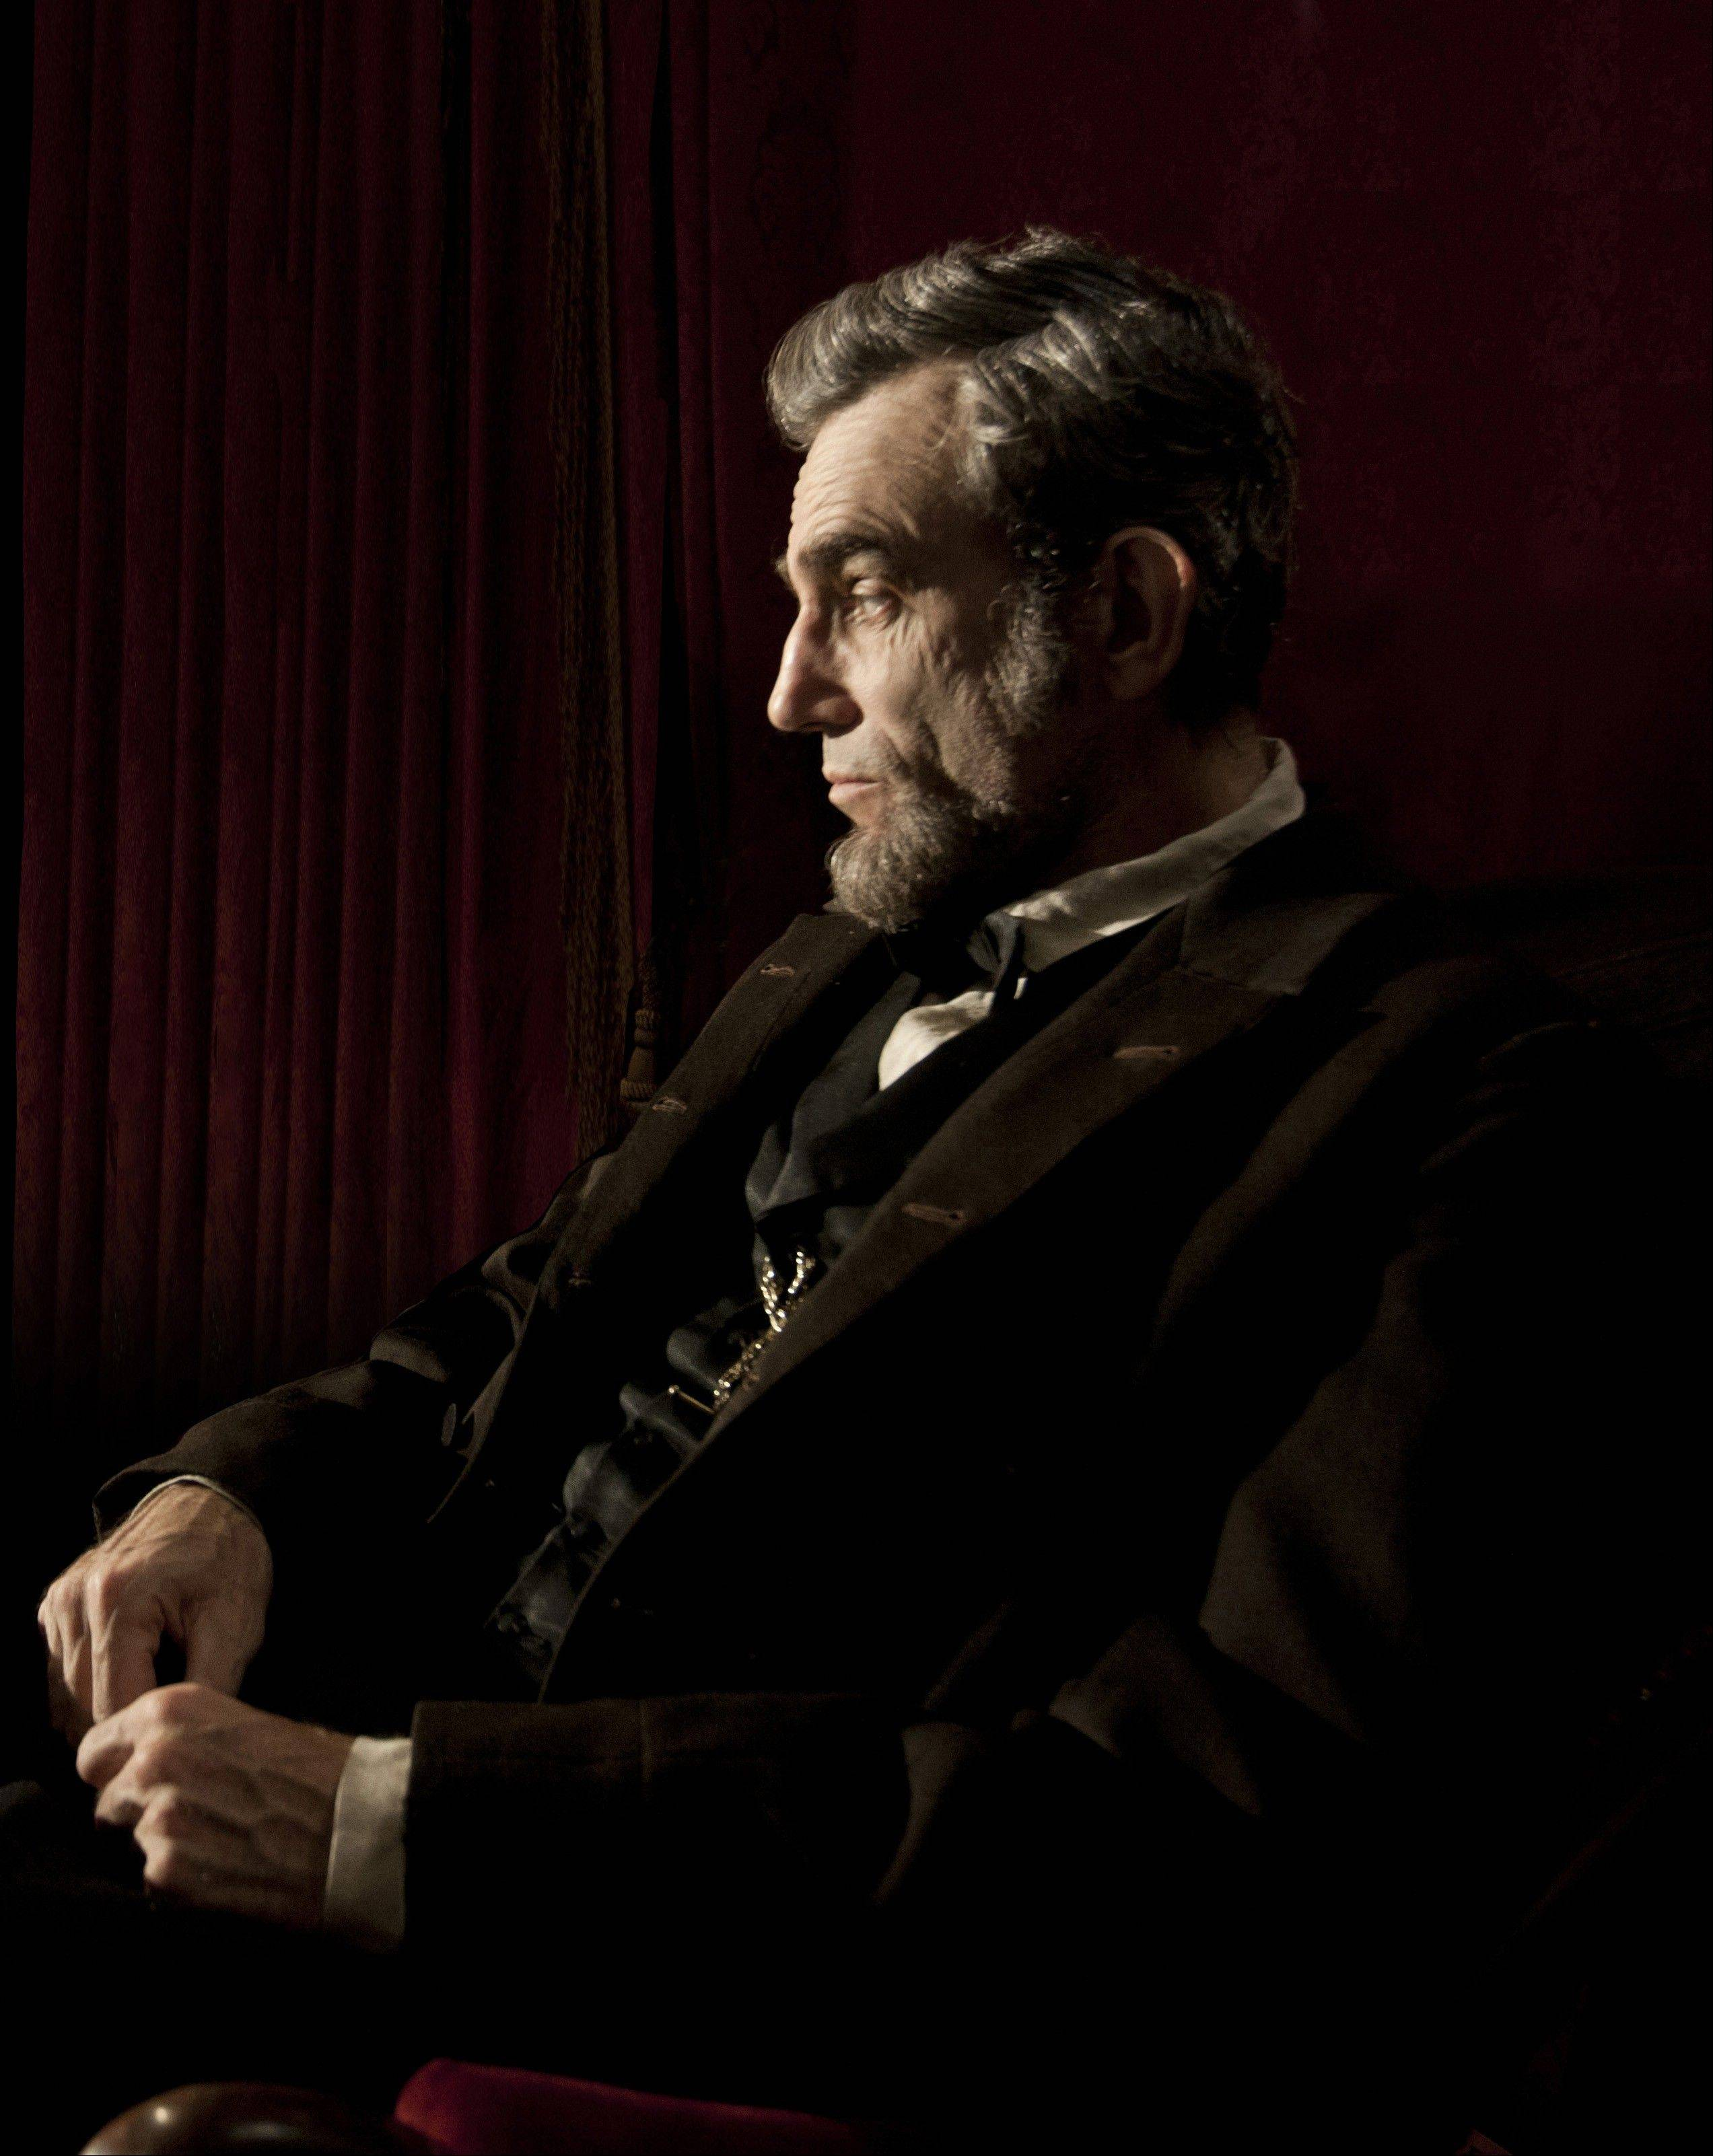 """Lincoln,"" with Daniel Day-Lewis portraying Abraham Lincoln, was nominated by the Producers Guild of America for the 24th Annual Producers Awards Wednesday."